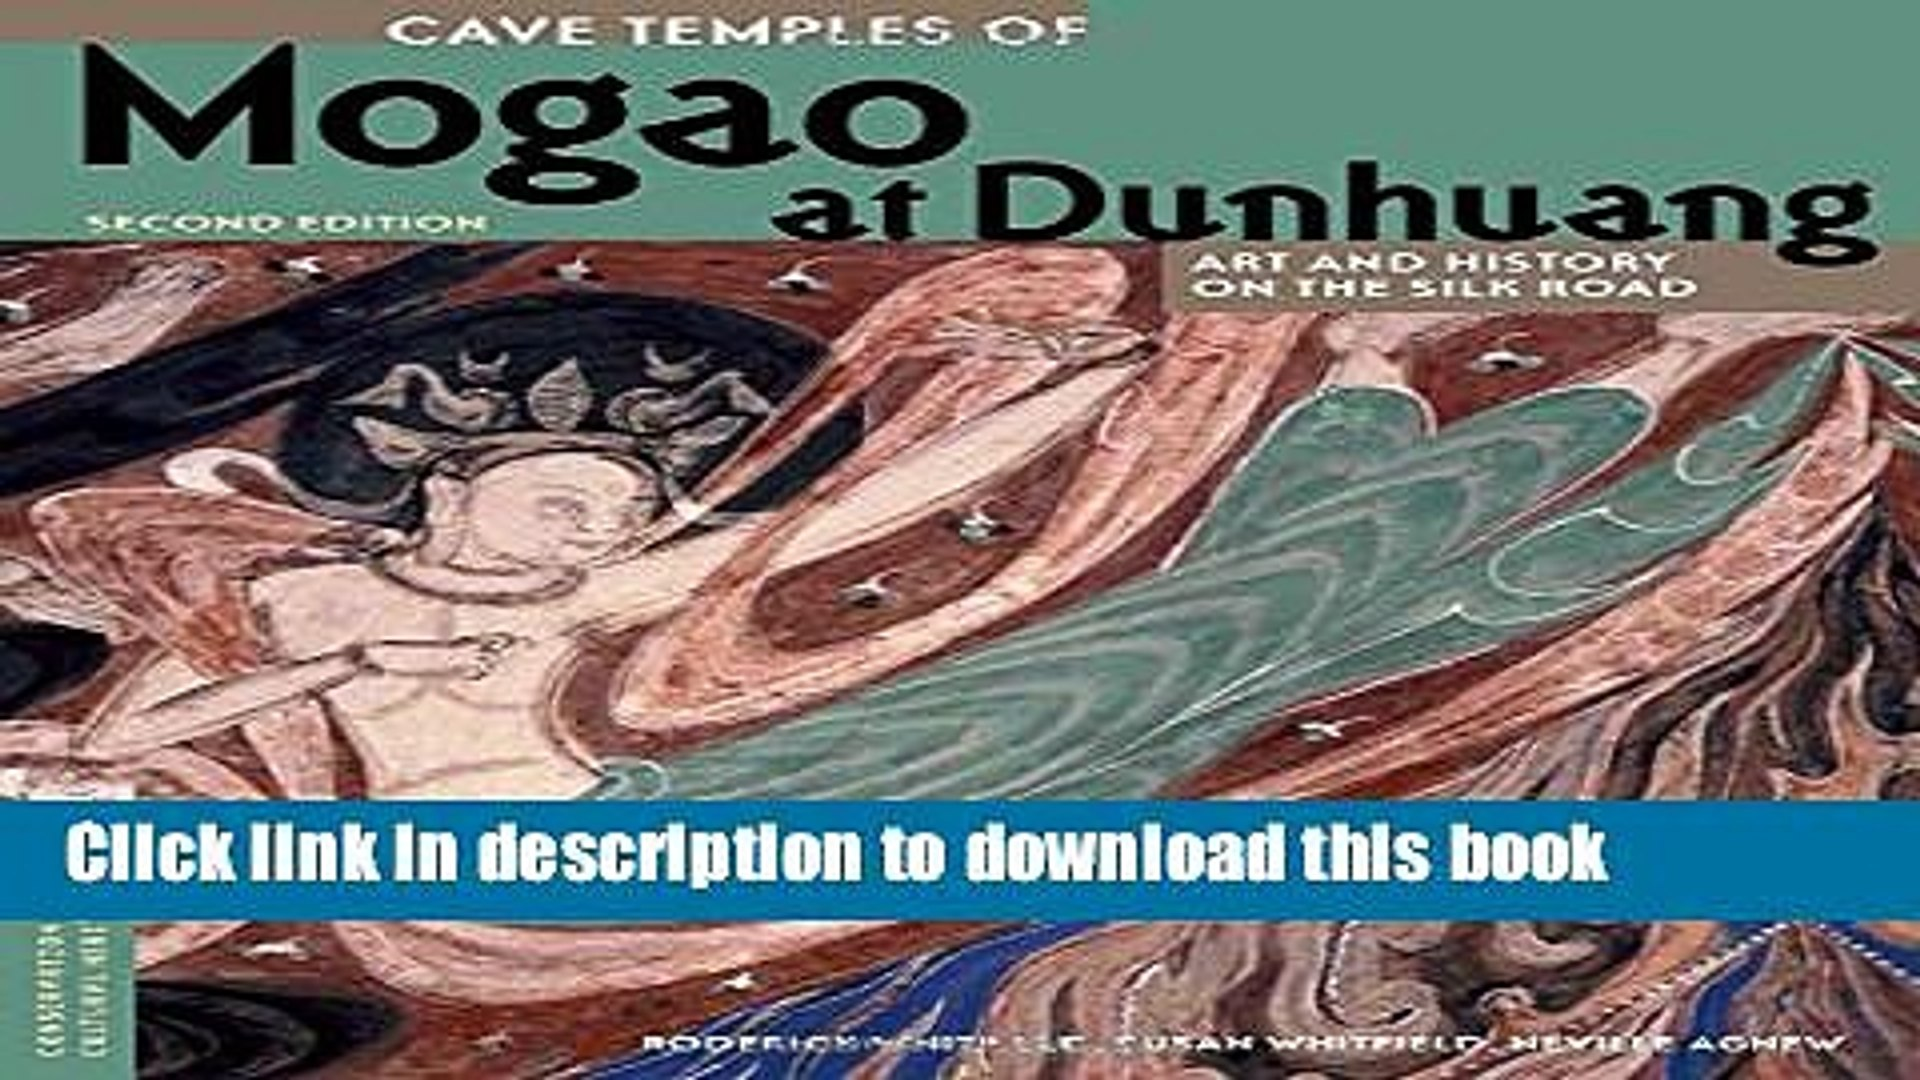 Art and History on the Silk Road Second Edition Cave Temples of Mogao at Dunhuang